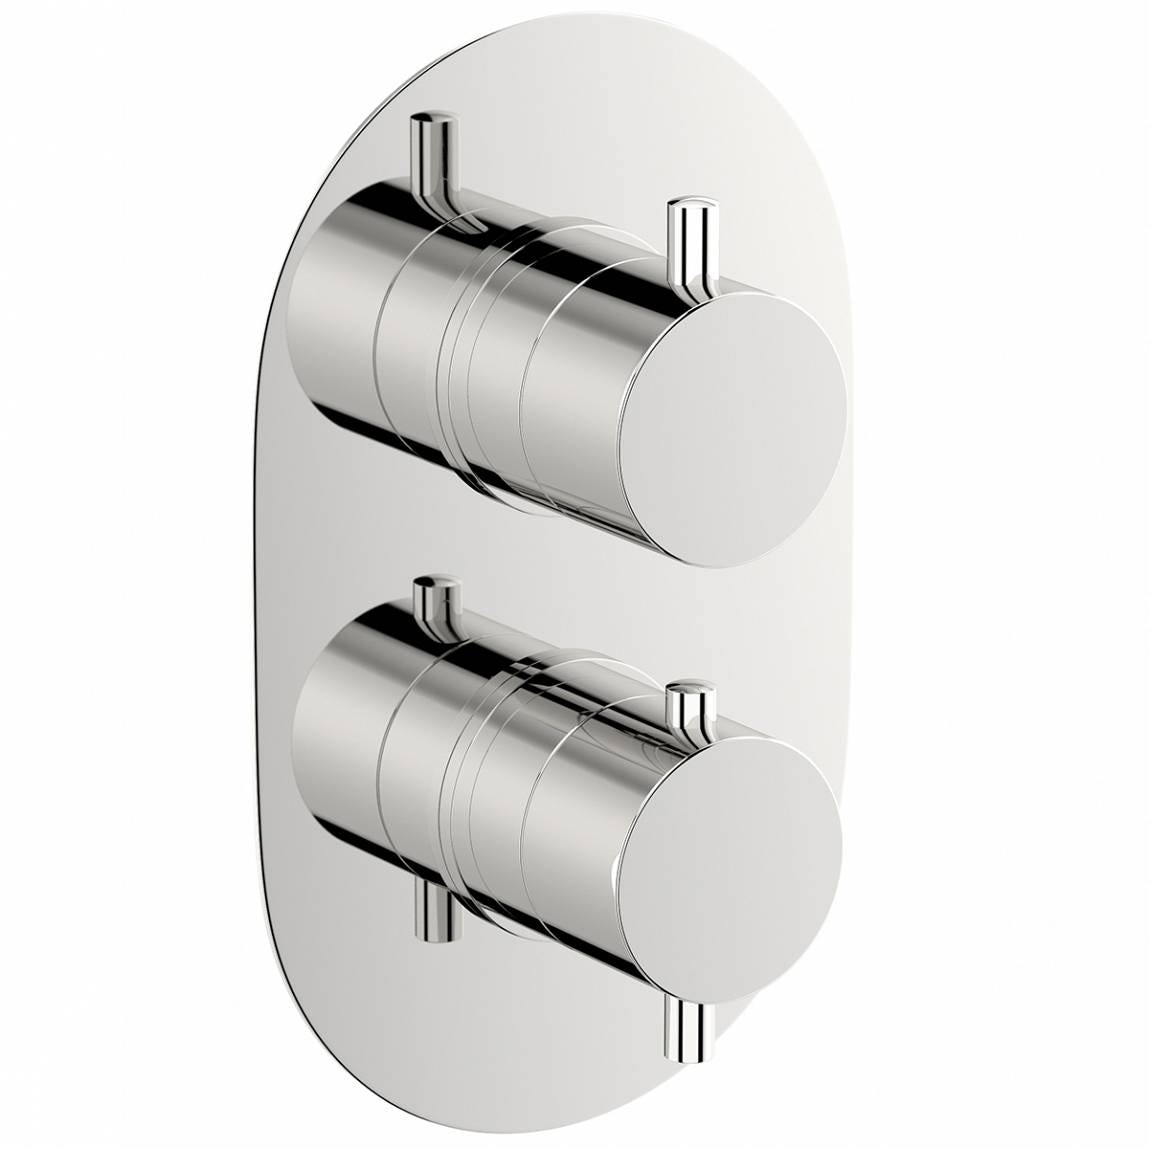 Mode Matrix oval twin thermostatic shower valve